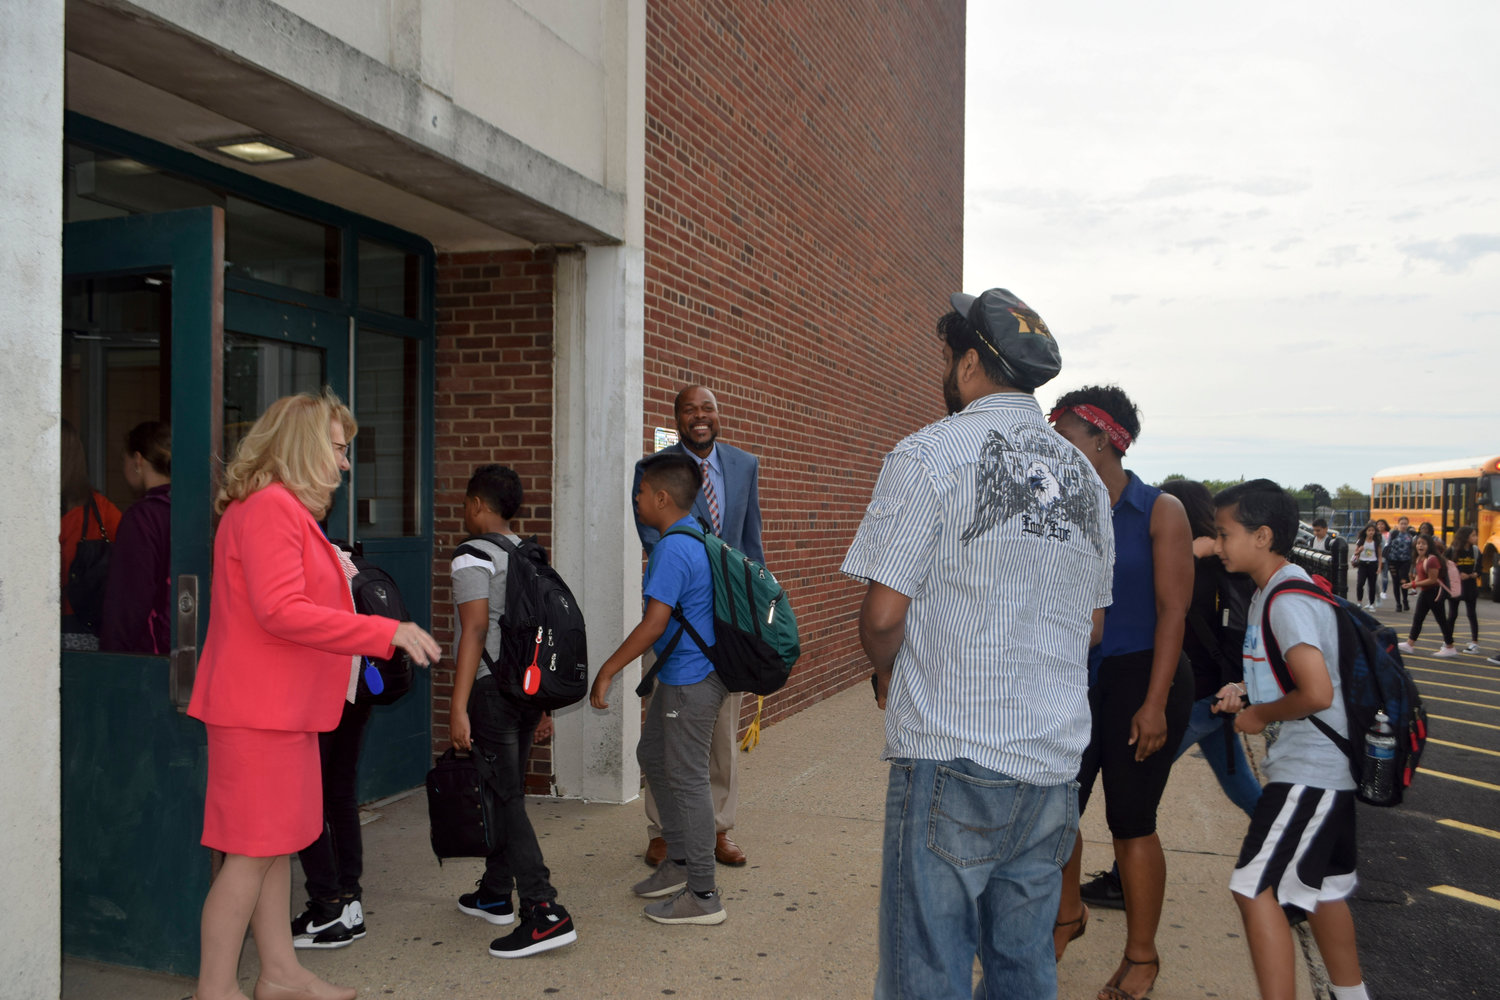 Middle school Principal Willis Perry was all smiles and Superintendent Dr. Ann Pedersen was at the door as both greeted parents and students on the first day of school.